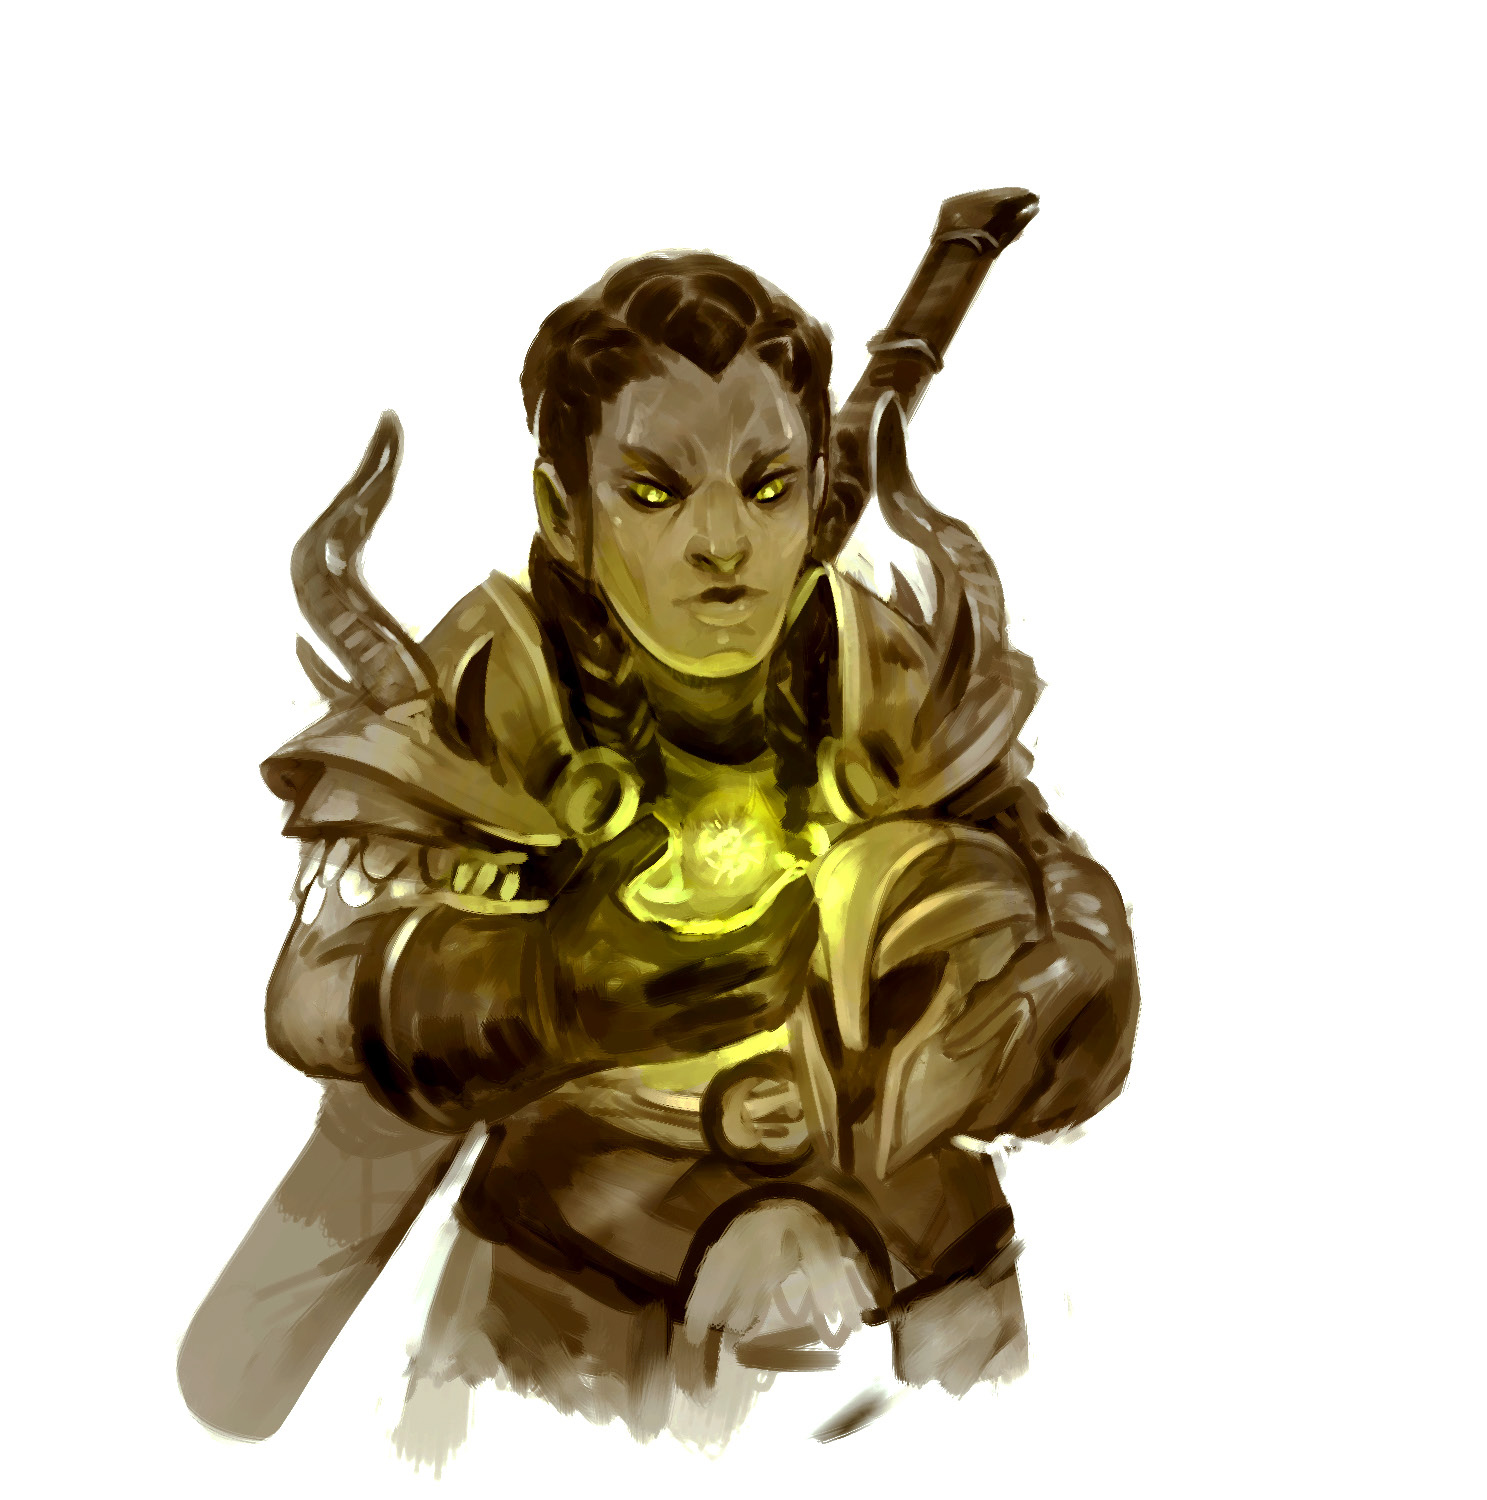 """stephen-wood Duergar paladino eretico - by Stephen Wood Dungeon Master's Guild """"Oath of the Heretic: A Paladin Path"""" (2018-05) © Wizards of the Coast e dell'autore, tutti i diritti riservati"""